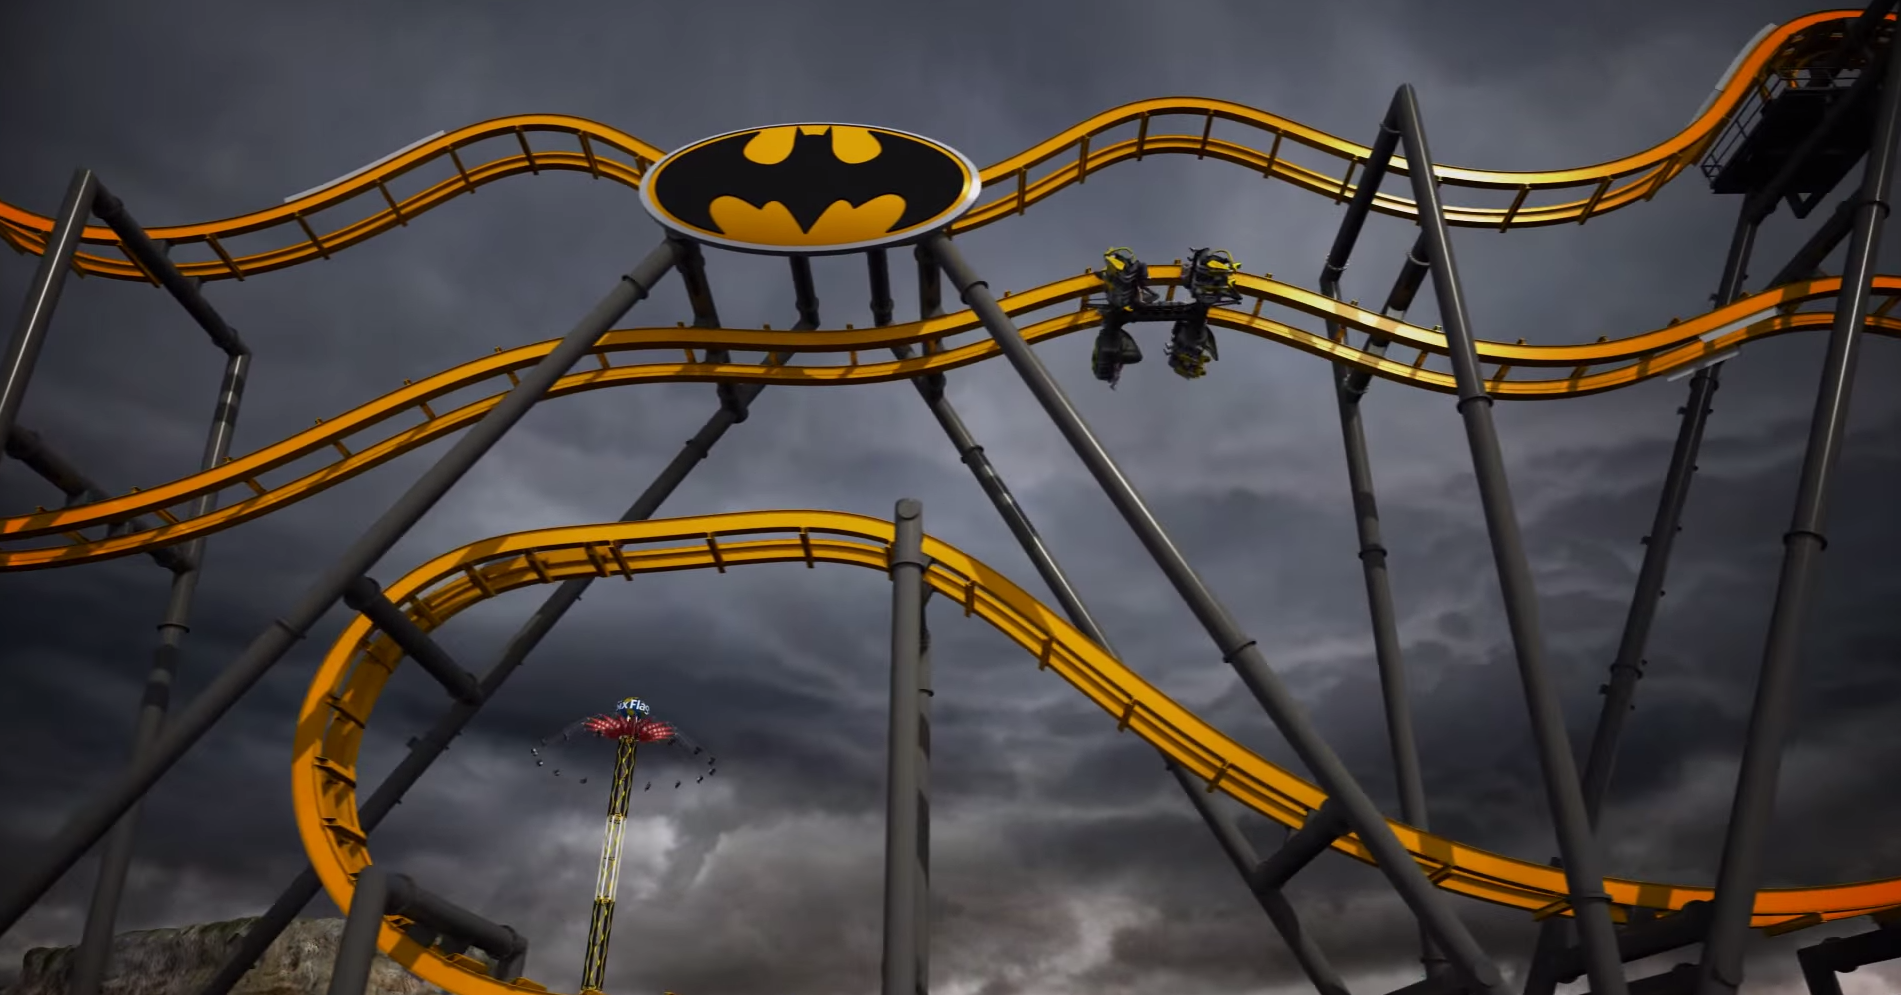 Batman: The Ride will let you glide through the air like the caped crusader, if you can stomach it.